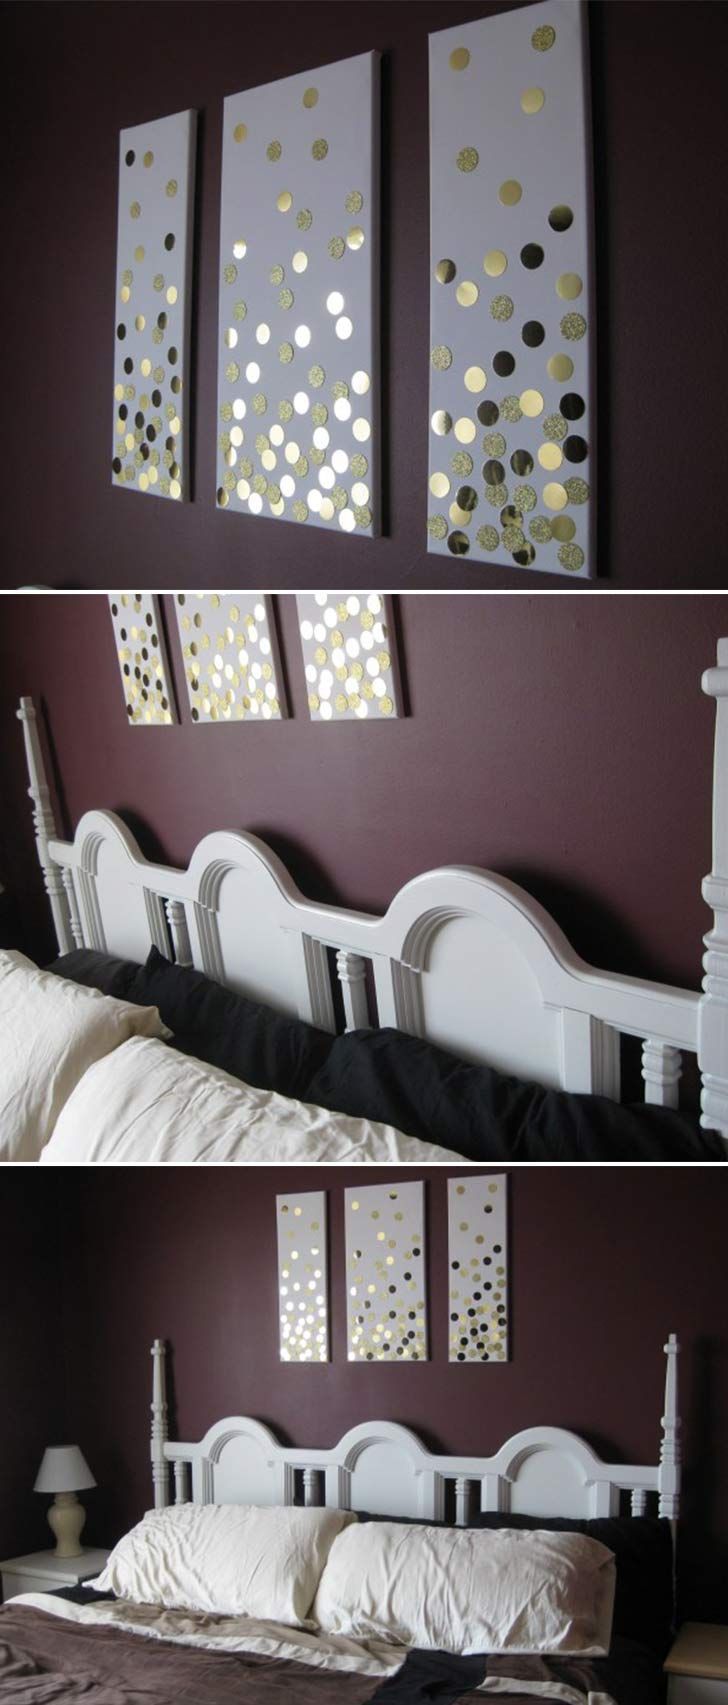 20 Amazing DIY Home Decor Ideas 20